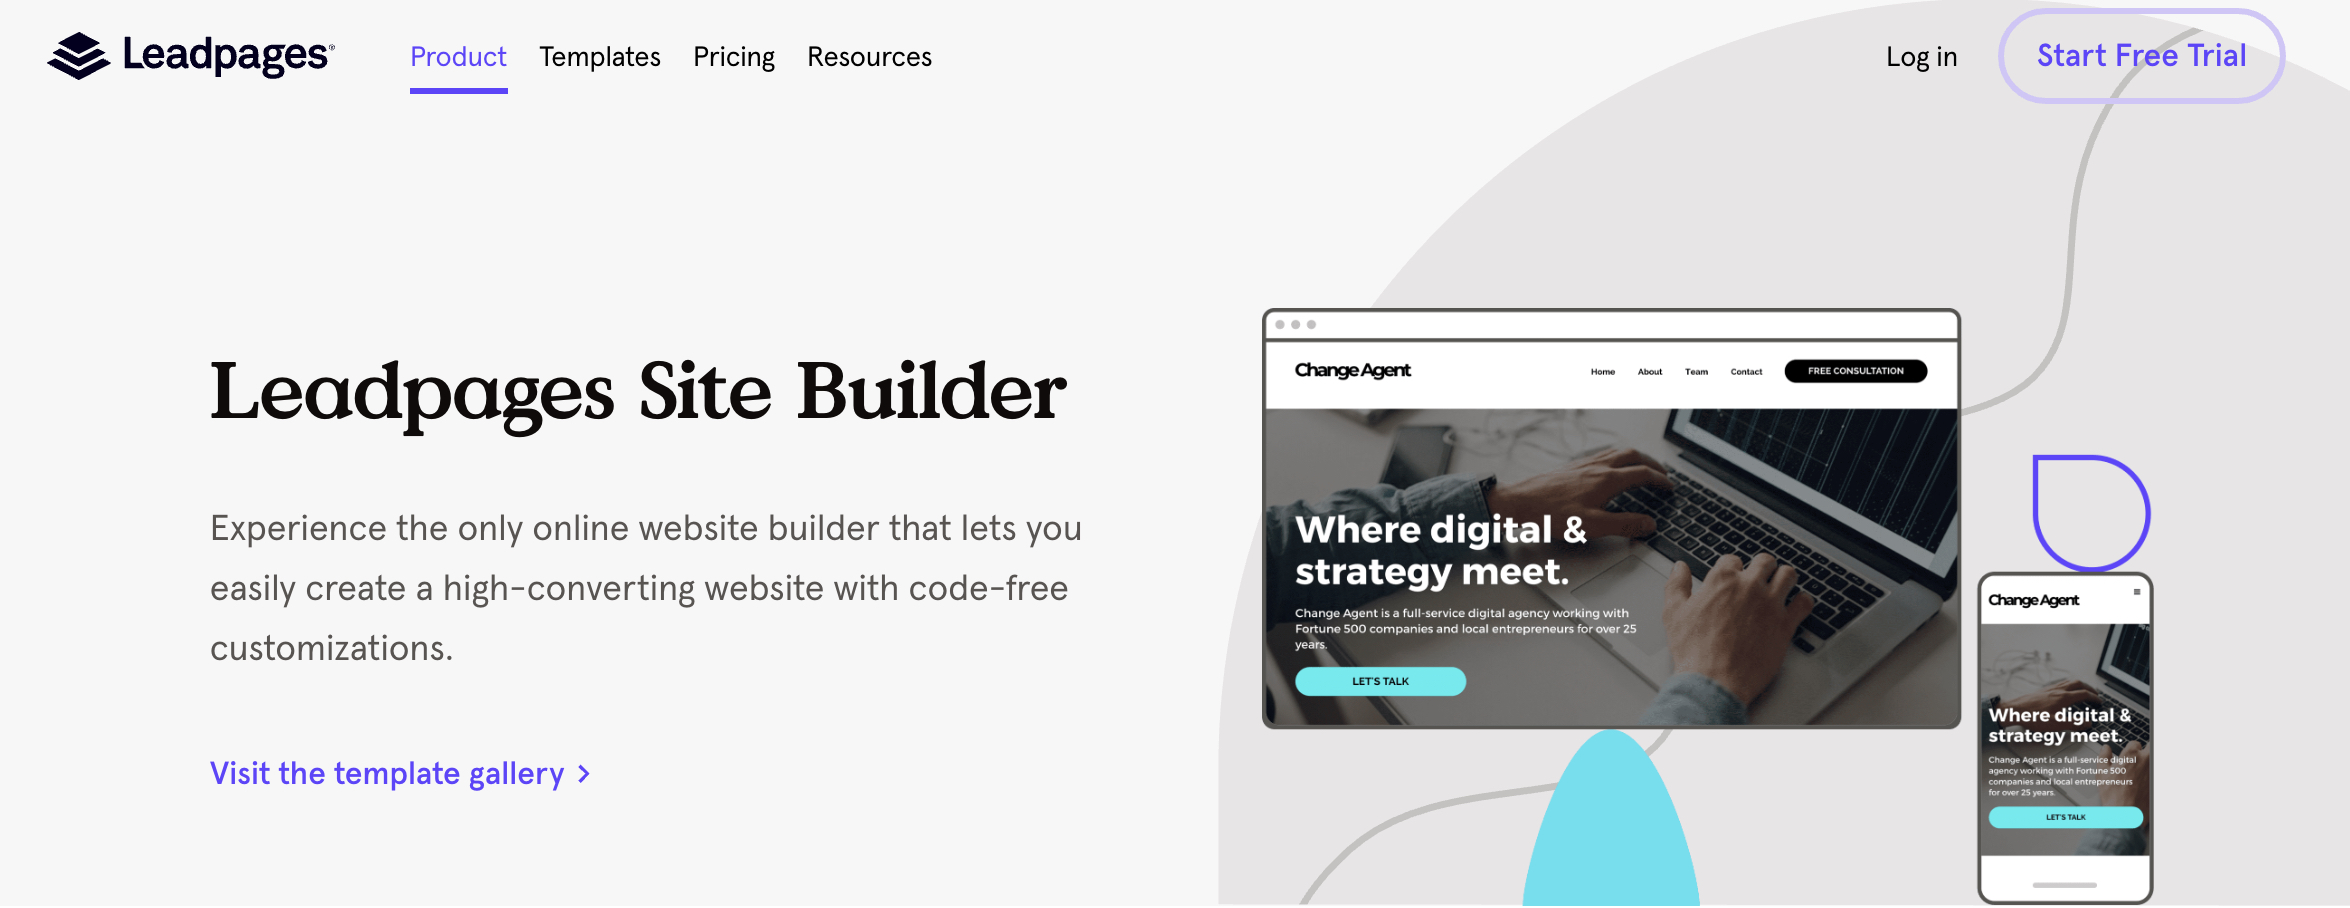 Leadpages Site Builder 2019-06-06 14-36-34.jpg